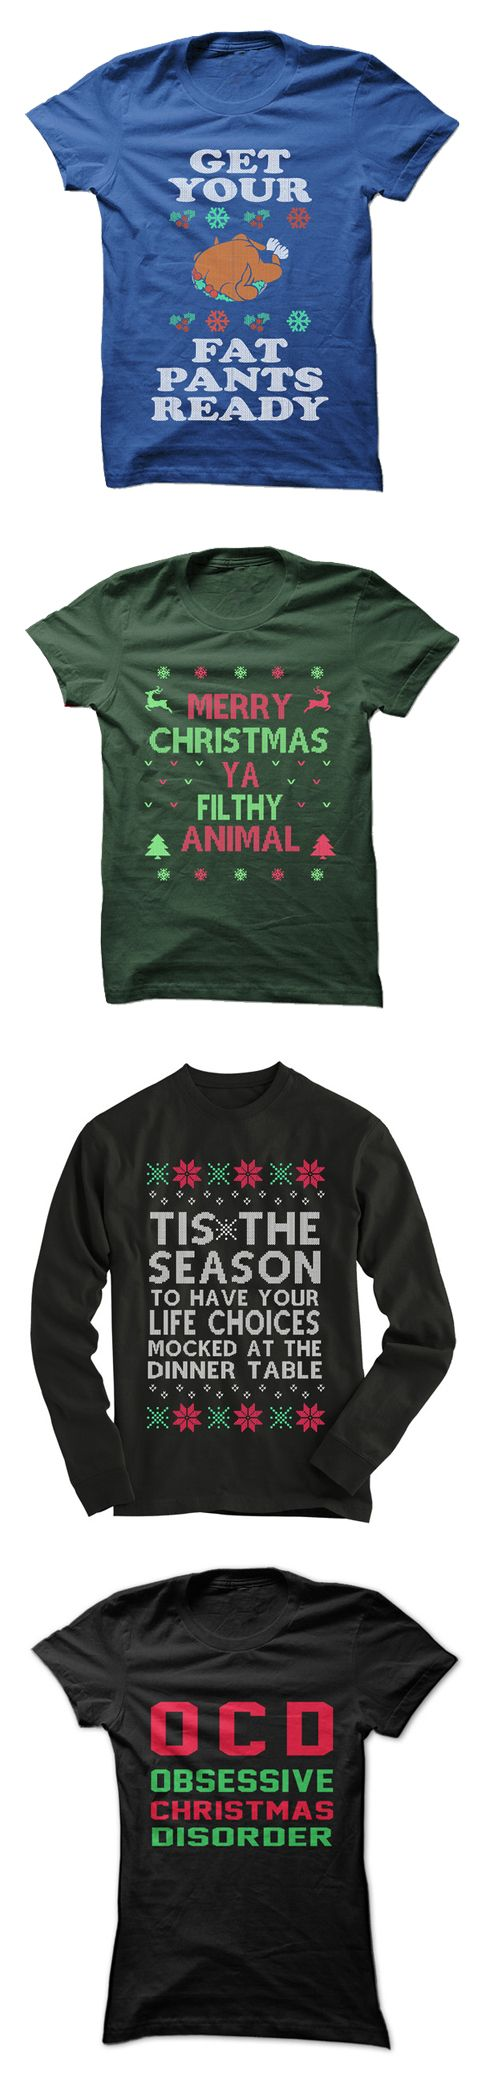 Dozens of wonderful Christmas Shirts available. Free Shipping always available. Click to check out our selection of awesome Christmas designs!